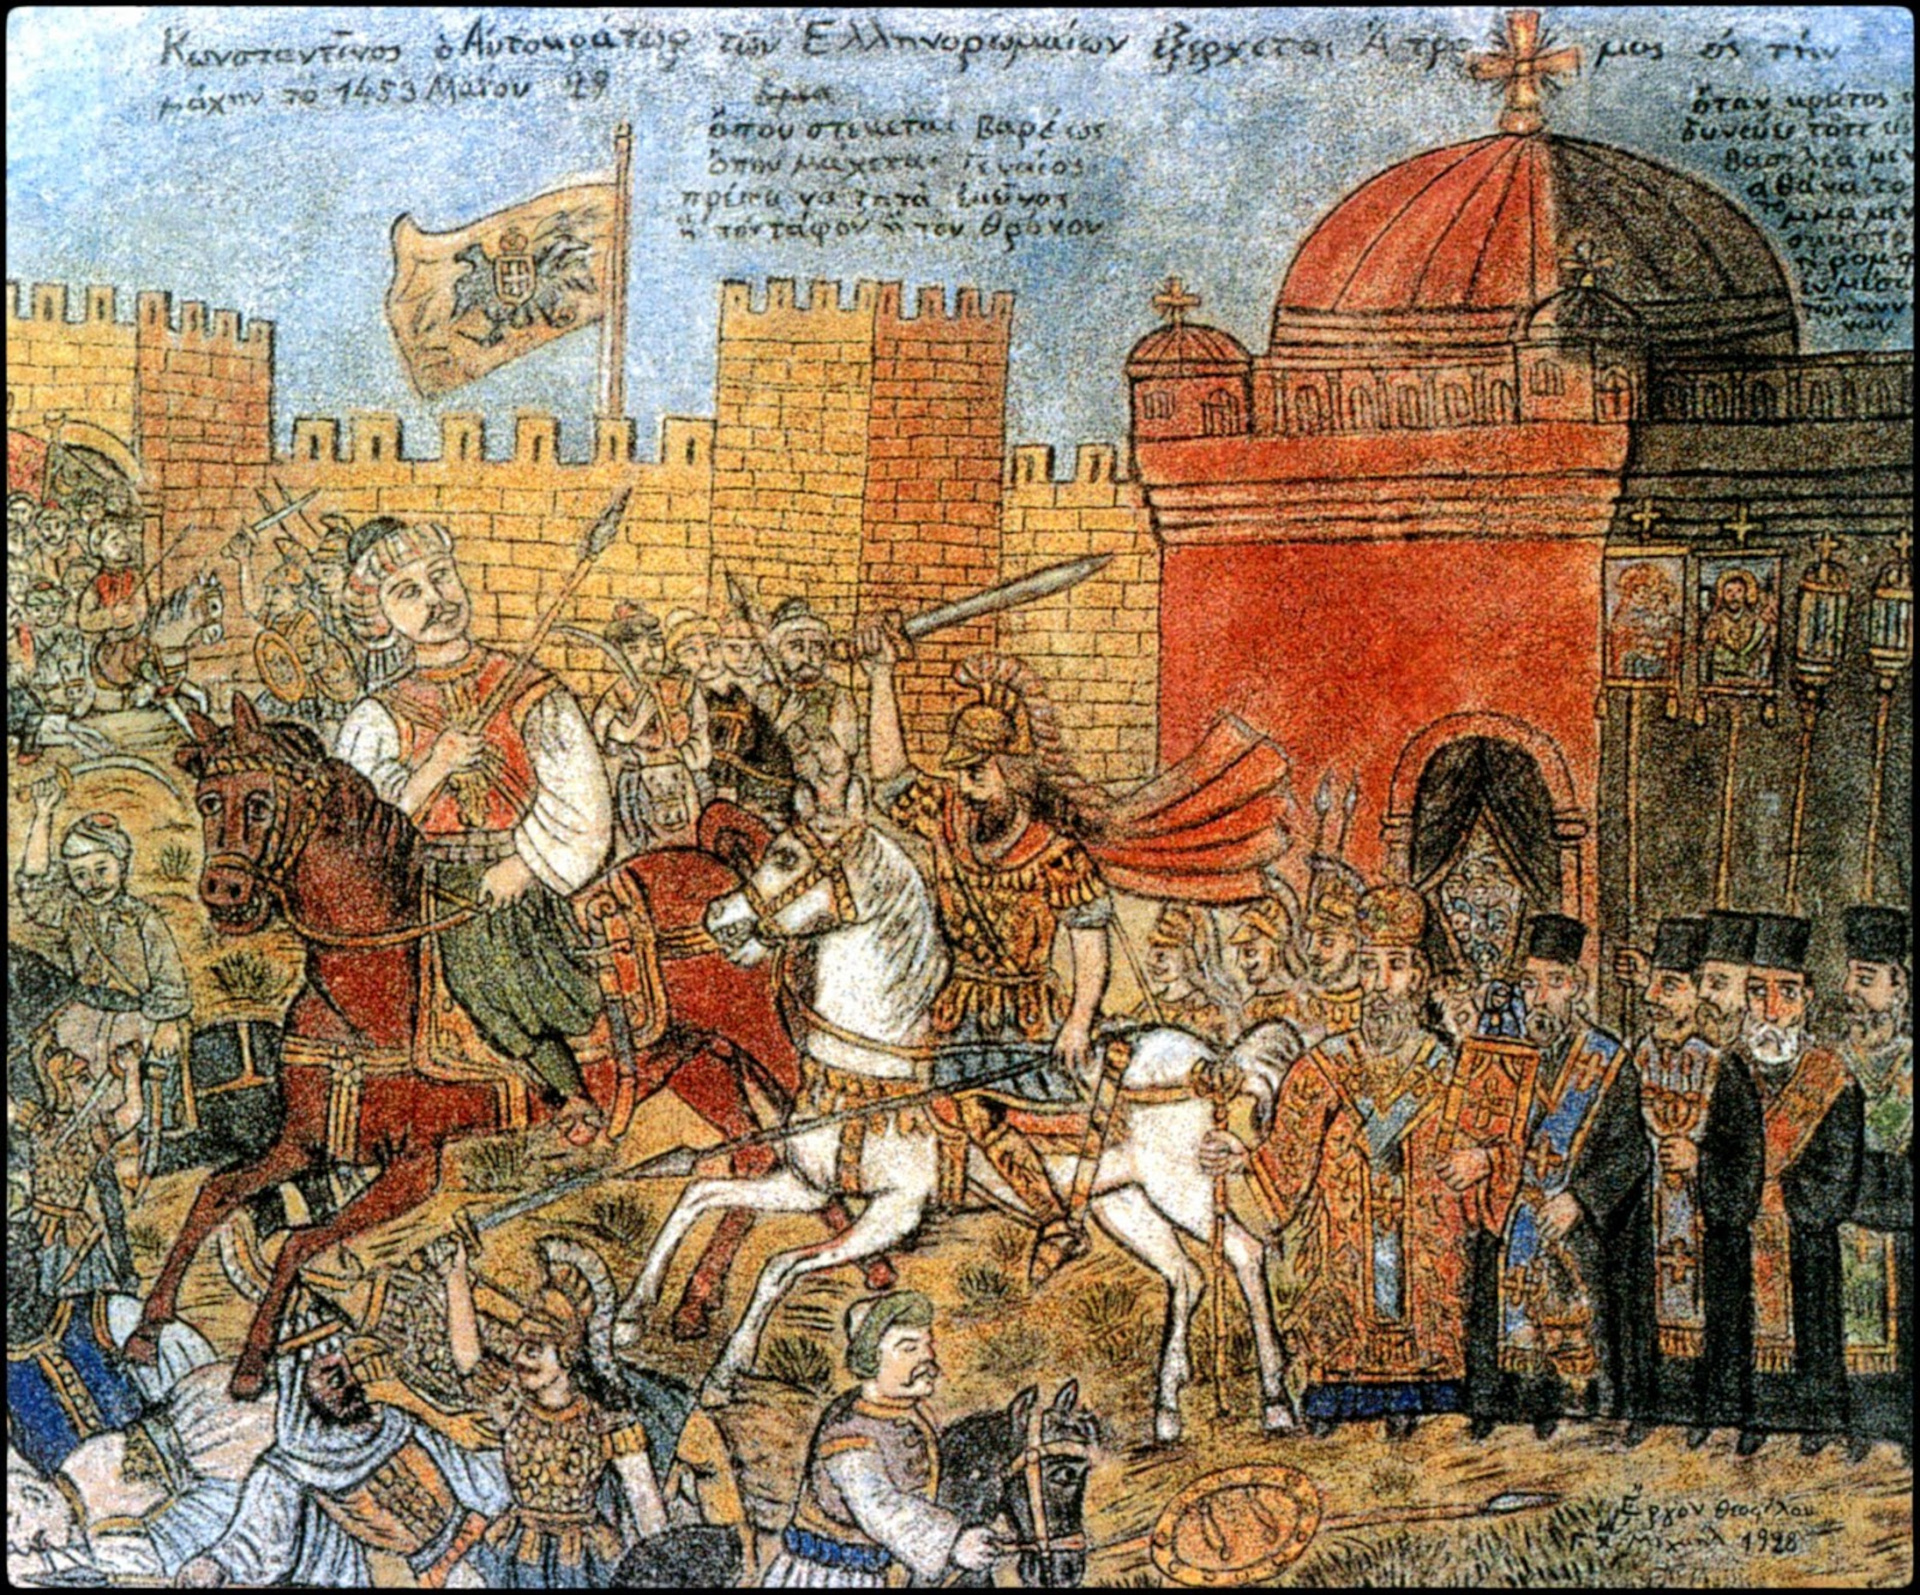 http://upload.wikimedia.org/wikipedia/commons/d/df/Fall-of-constantinople-22.jpg